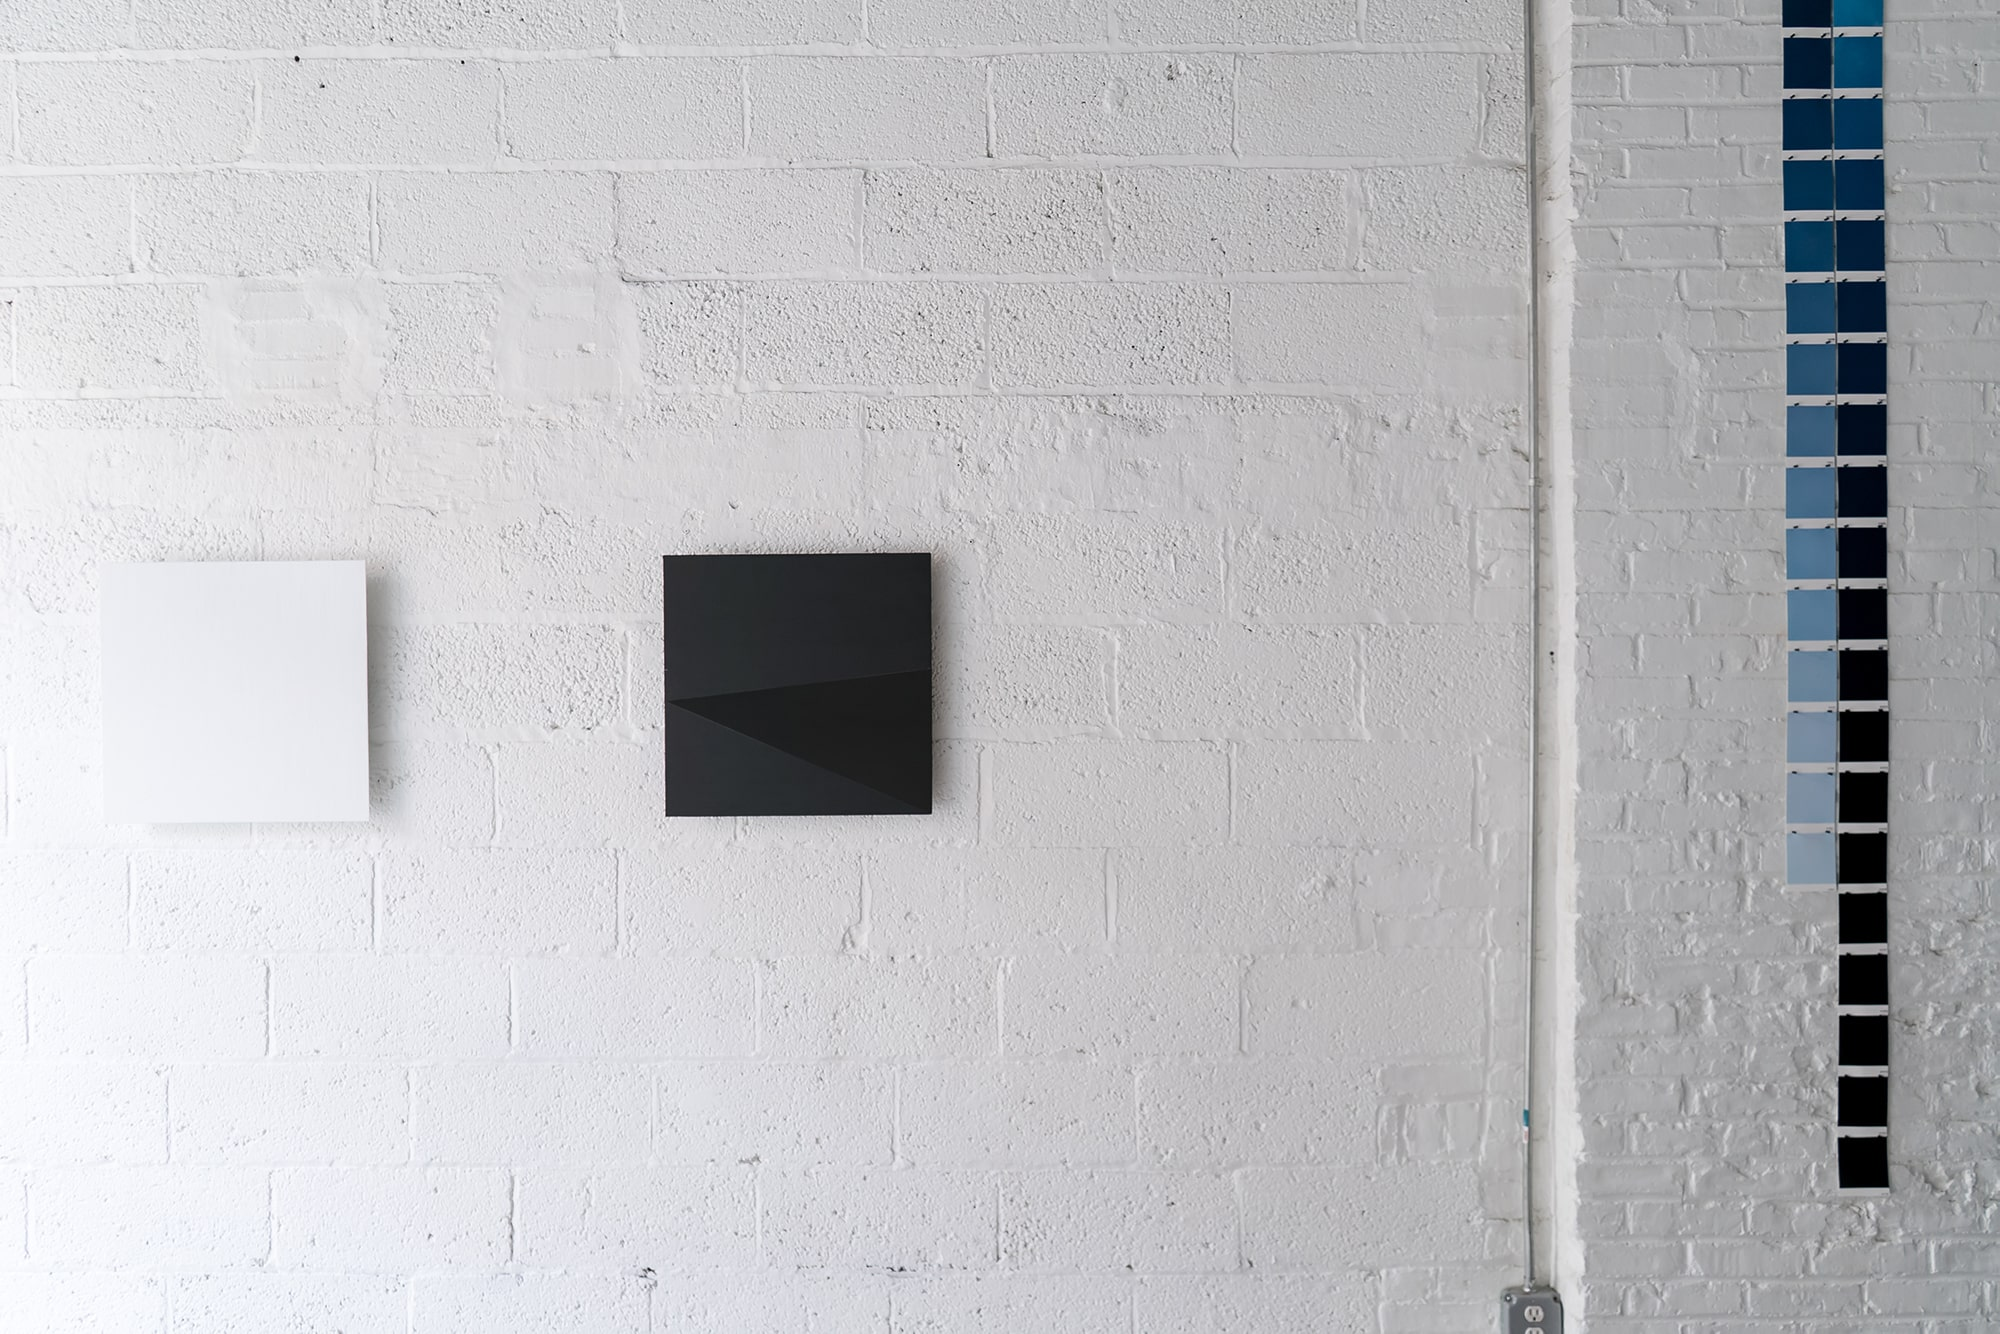 Installation view of Randy Gibson's <em>Rational Time</em>  at the Wild Project Gallery, <em>Available Light Symmetry 17 VIII 21</em> on the right.